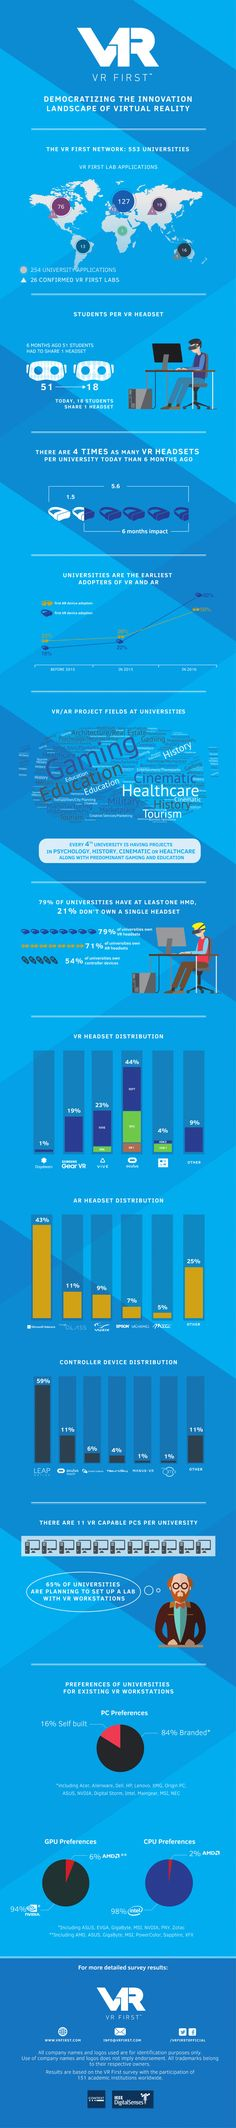 Infographic from VR First about universities researching virtual and augmented reality.